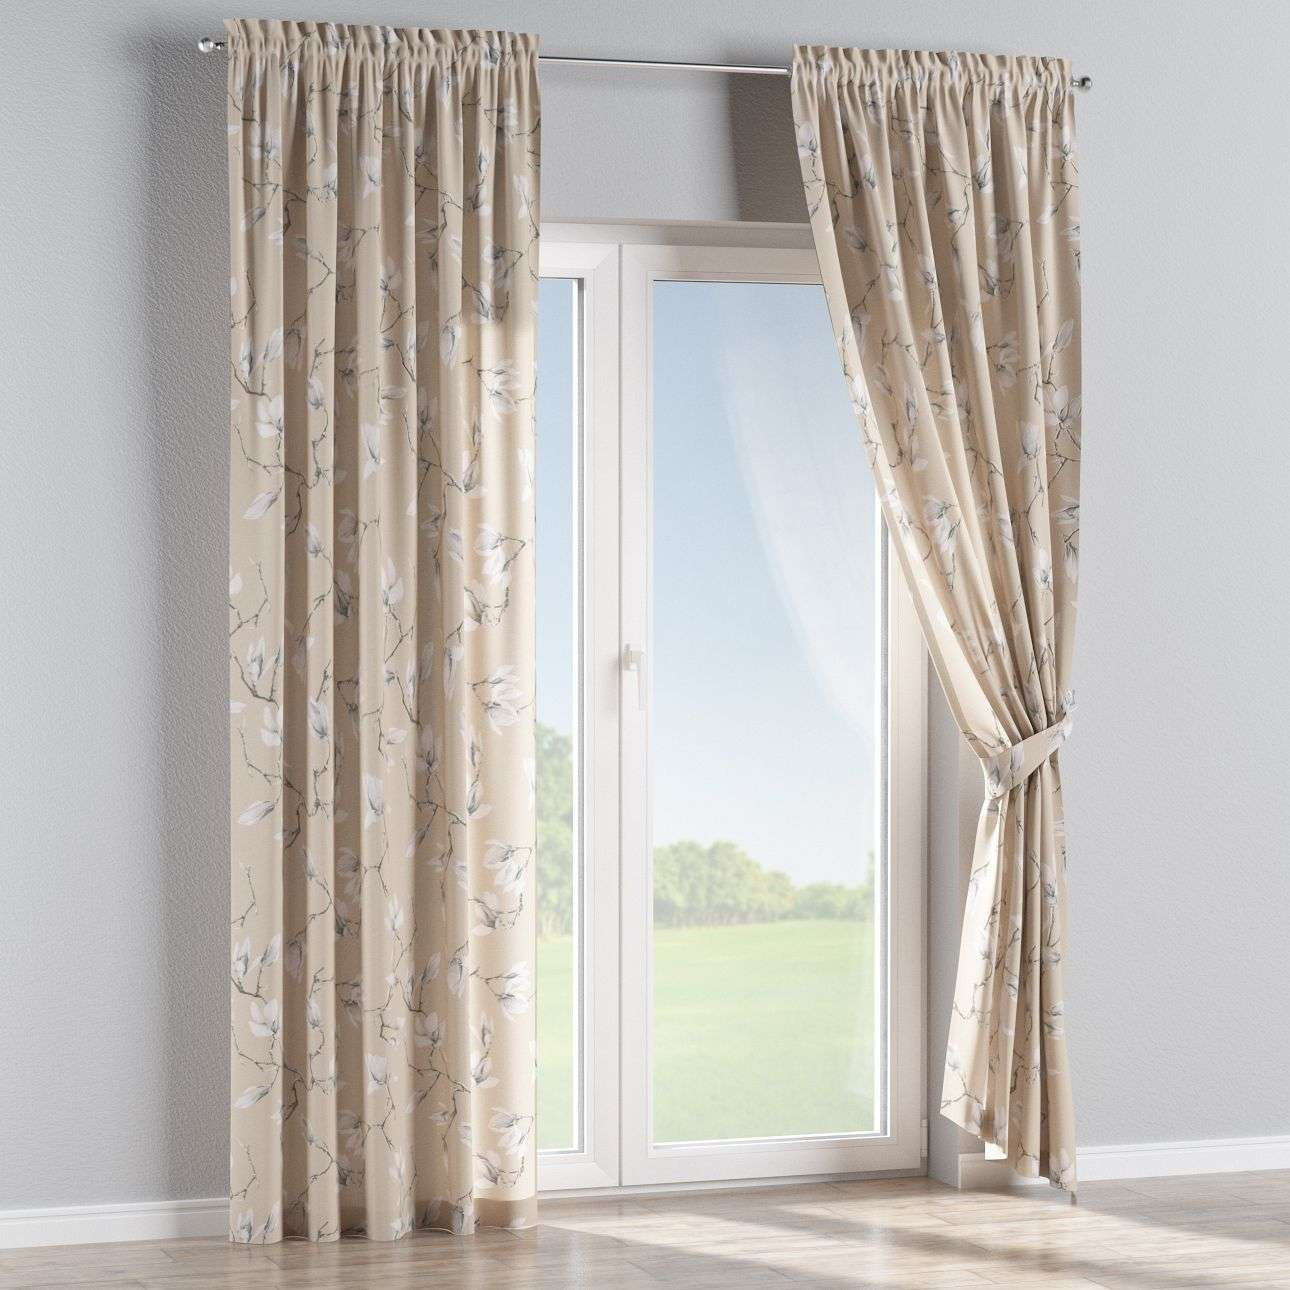 Slot and frill curtains 130 × 260 cm (51 × 102 inch) in collection Flowers, fabric: 311-12